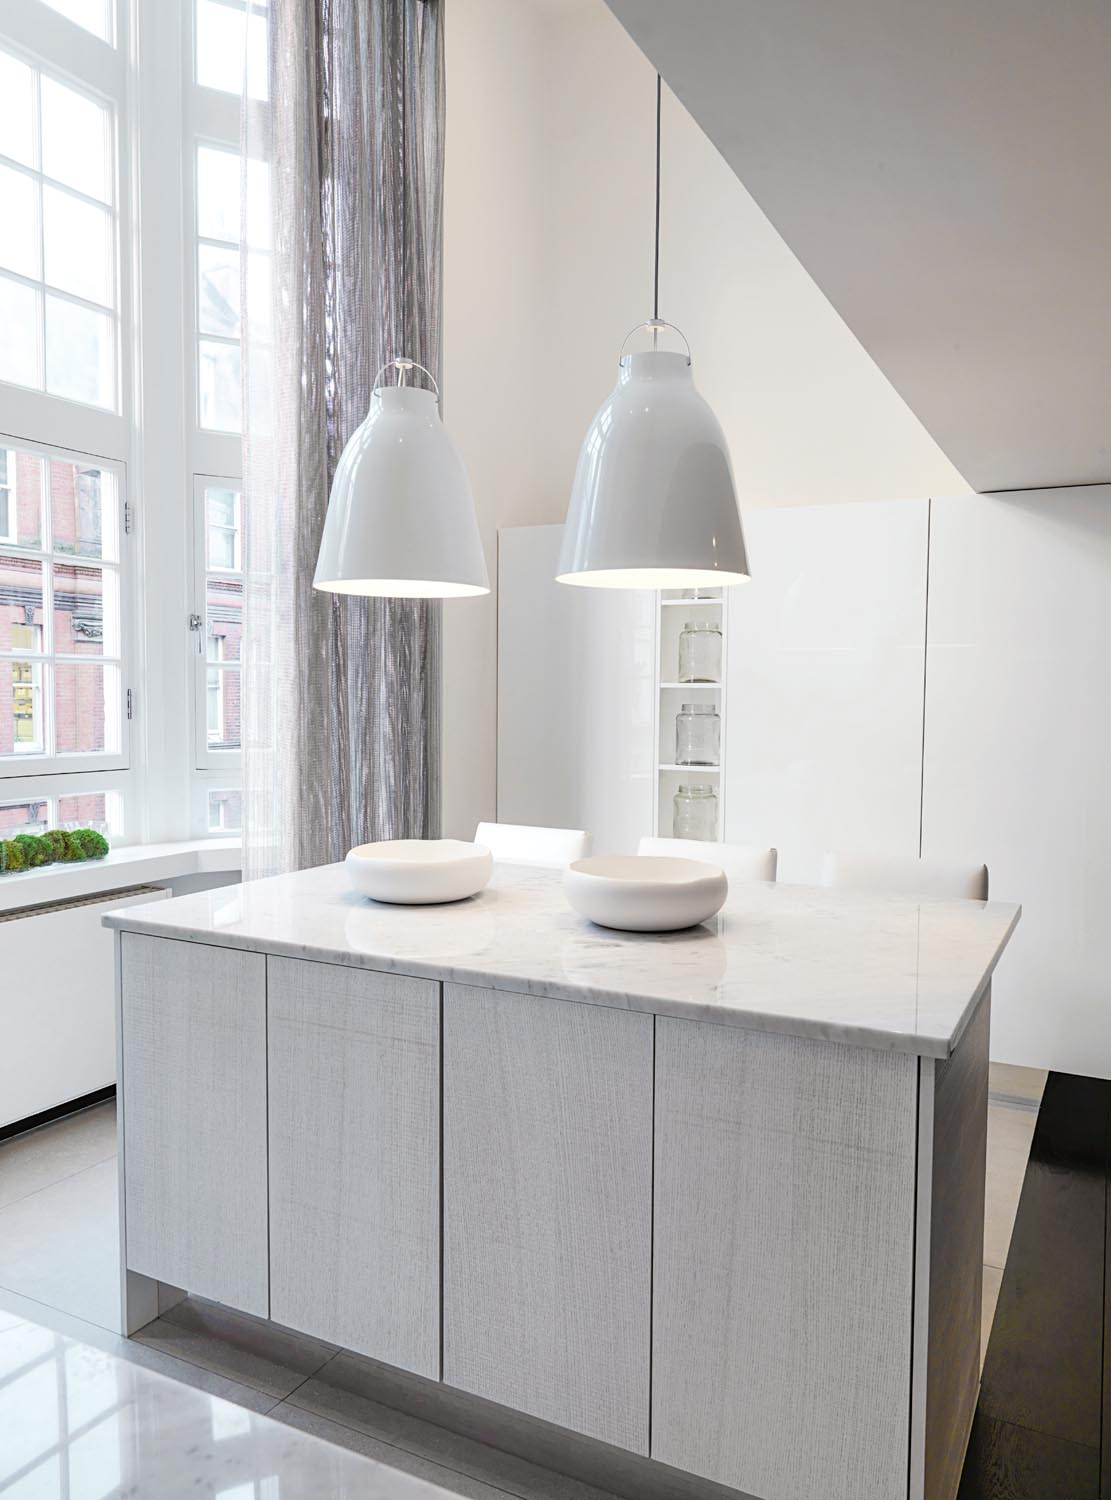 Hanging pendants are functional and beautiful to look at in a minimalist and classic kitchen